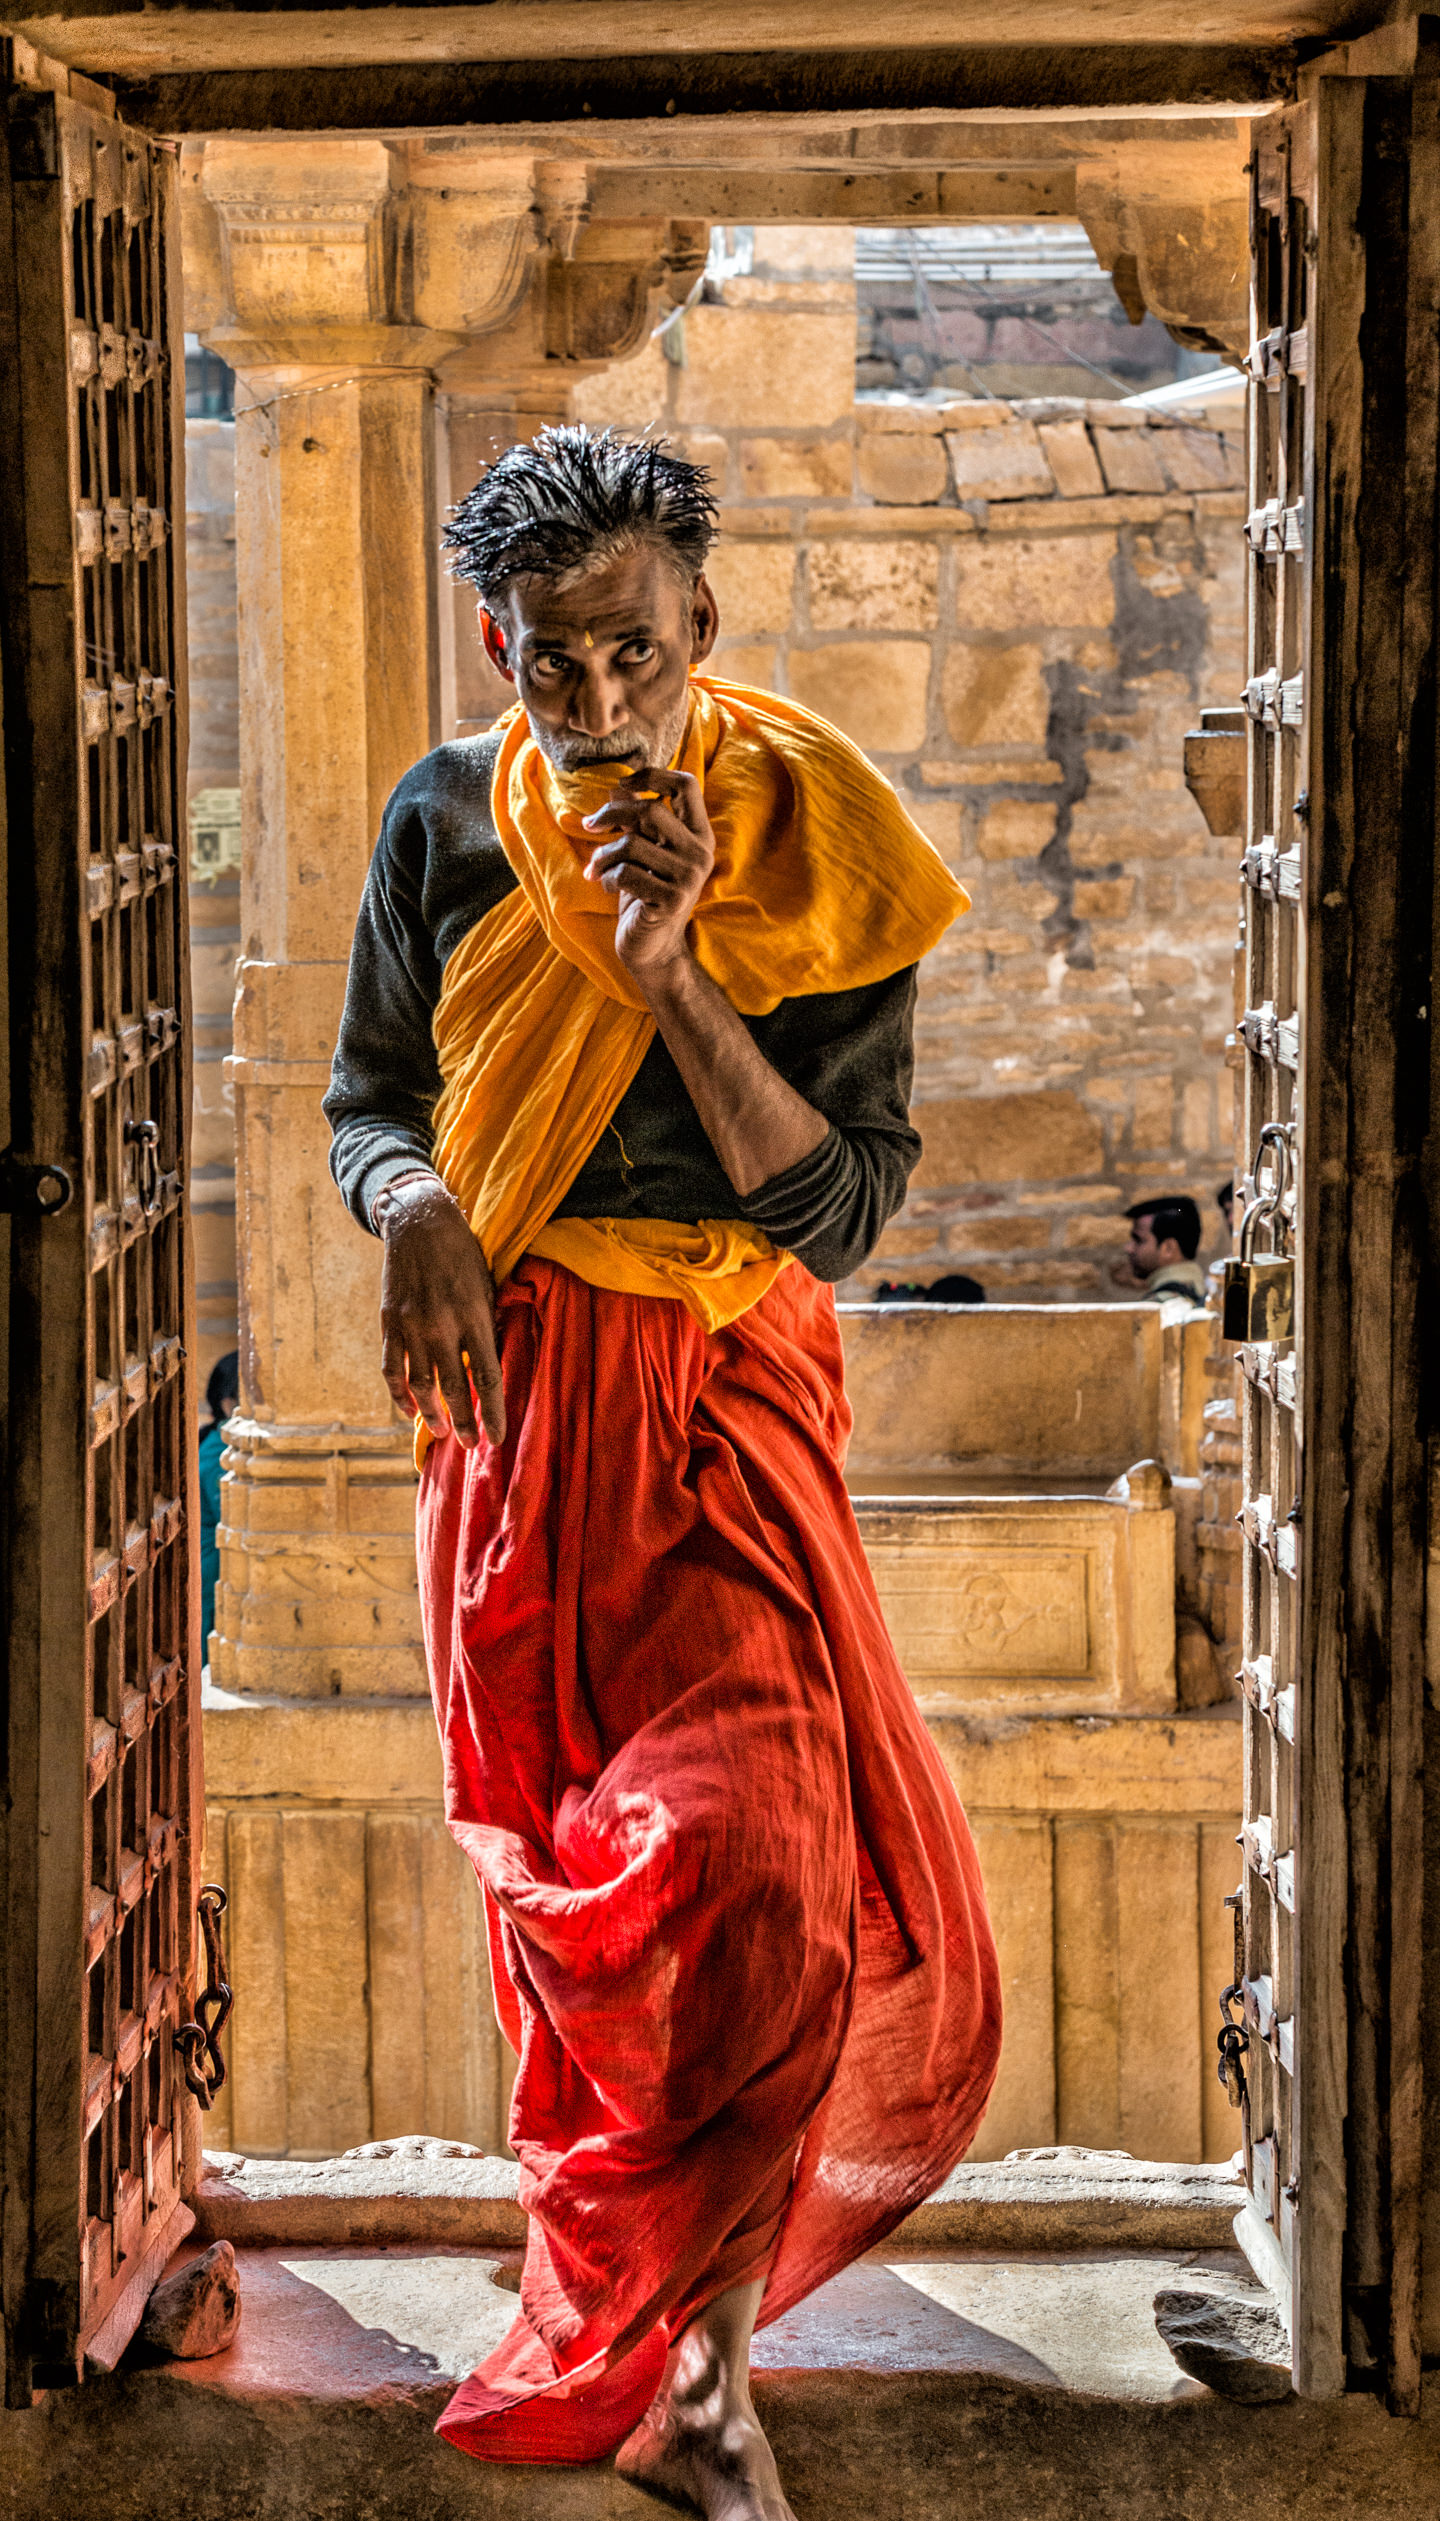 [2015_01_25]_India_2015_Jaisalmer_(NIKON_D800)_2164-Edit[1].jpg